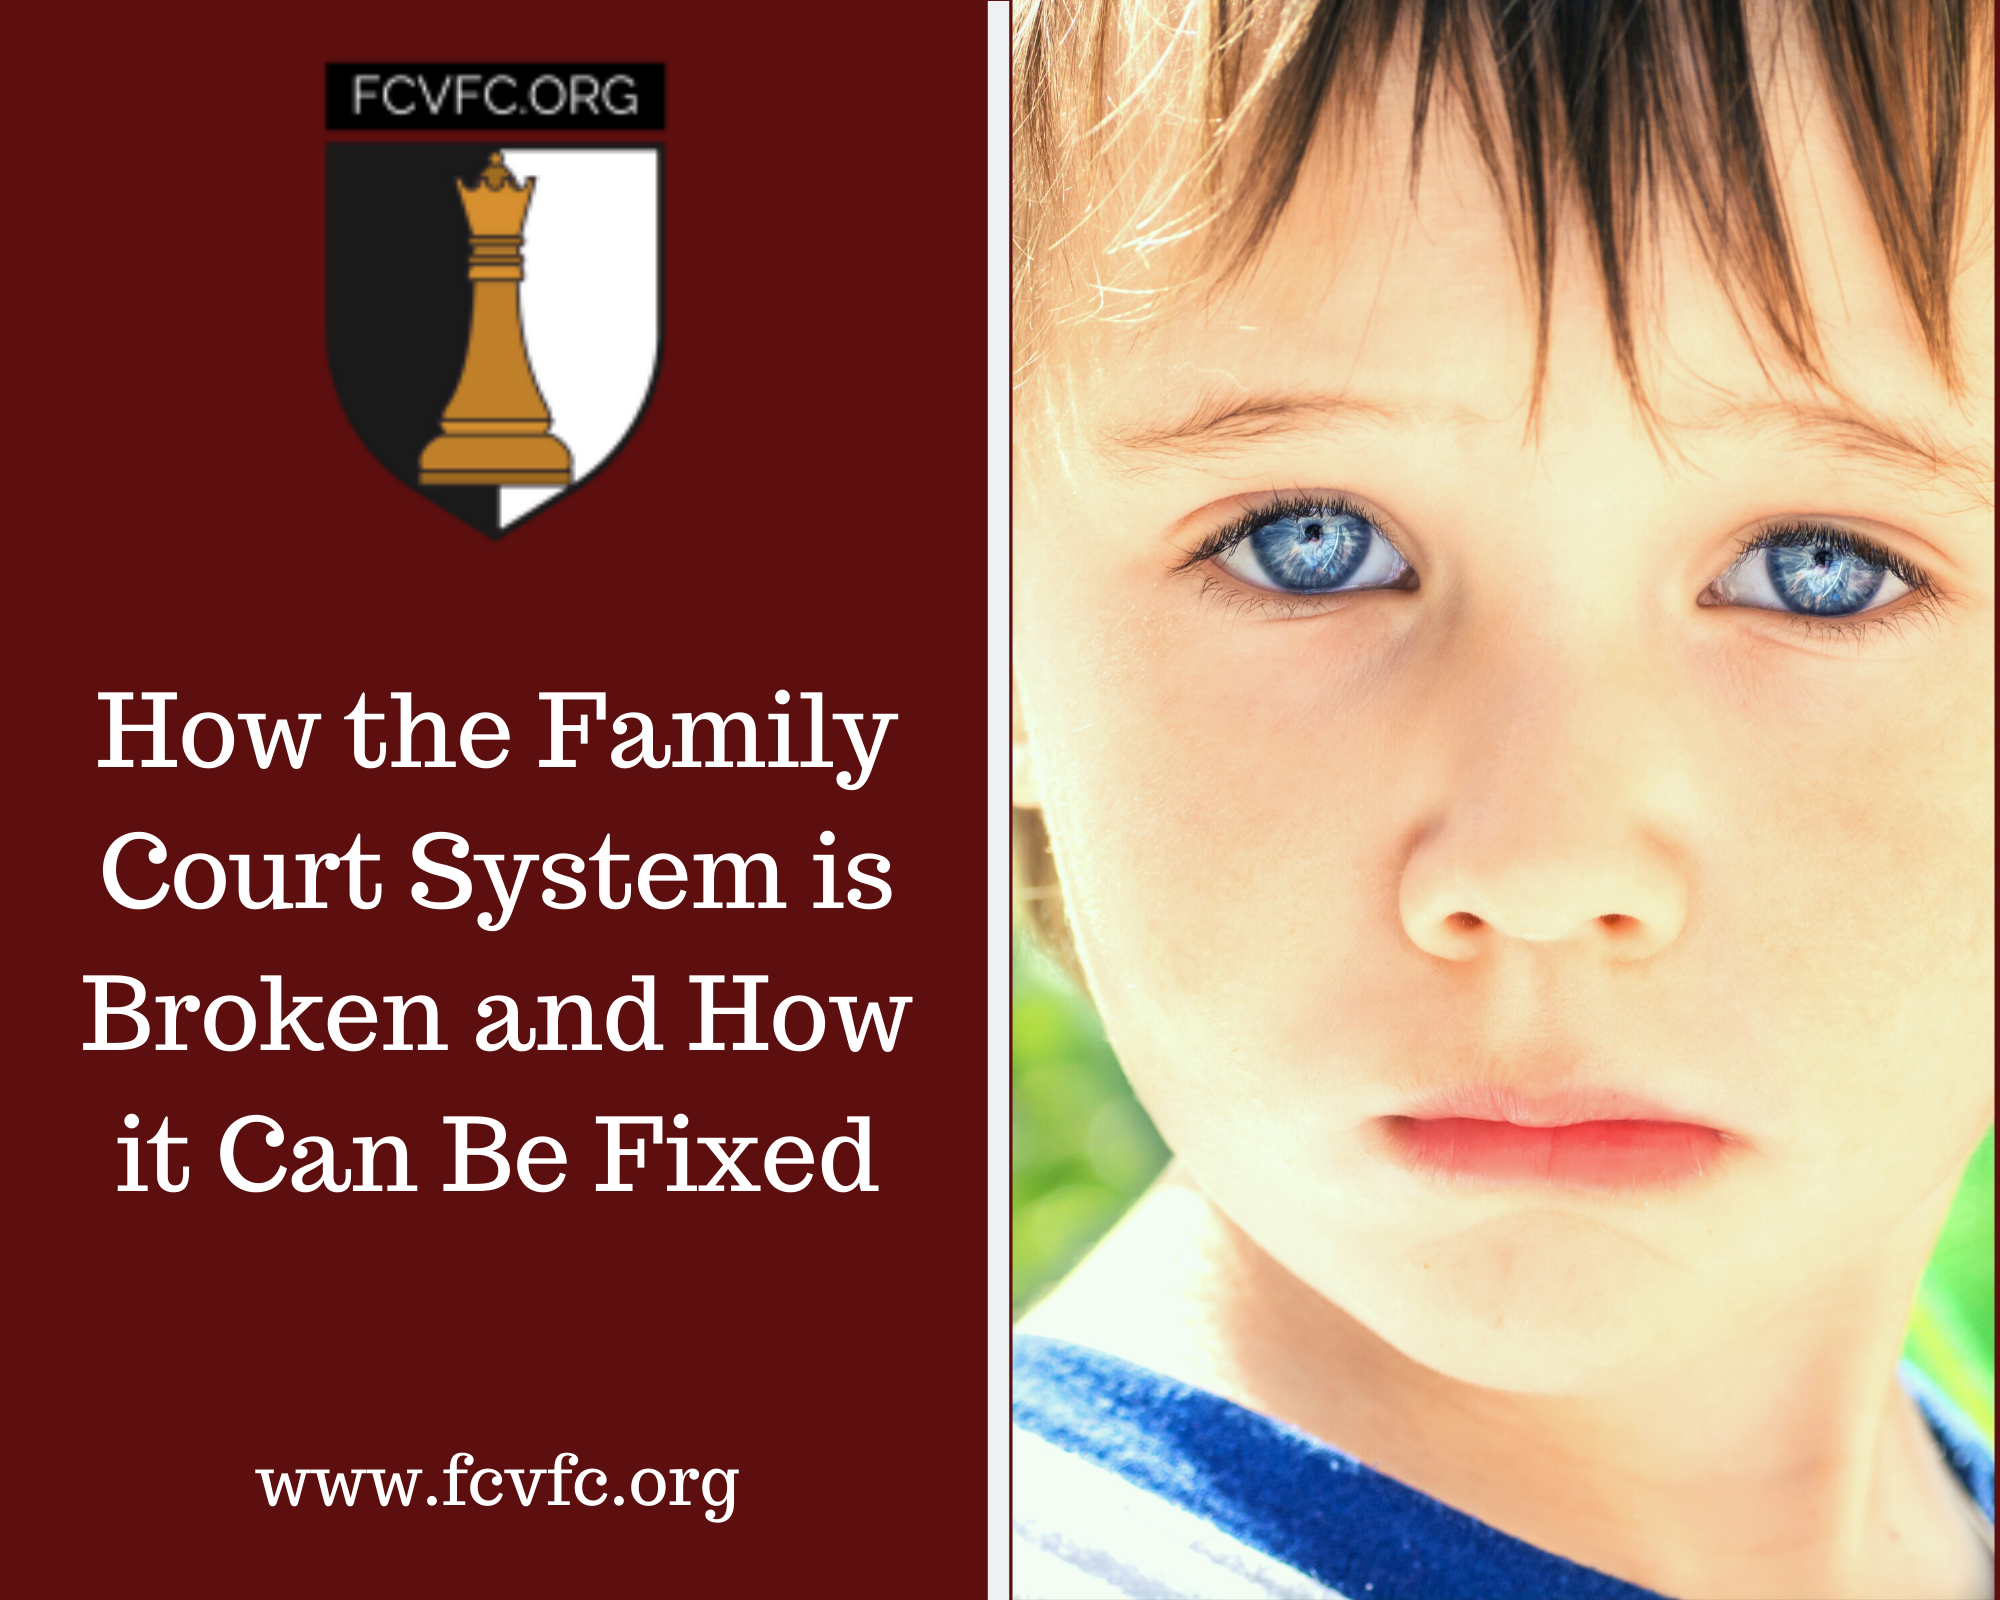 How the Family Court System is Broken and How it Can Be Fixed